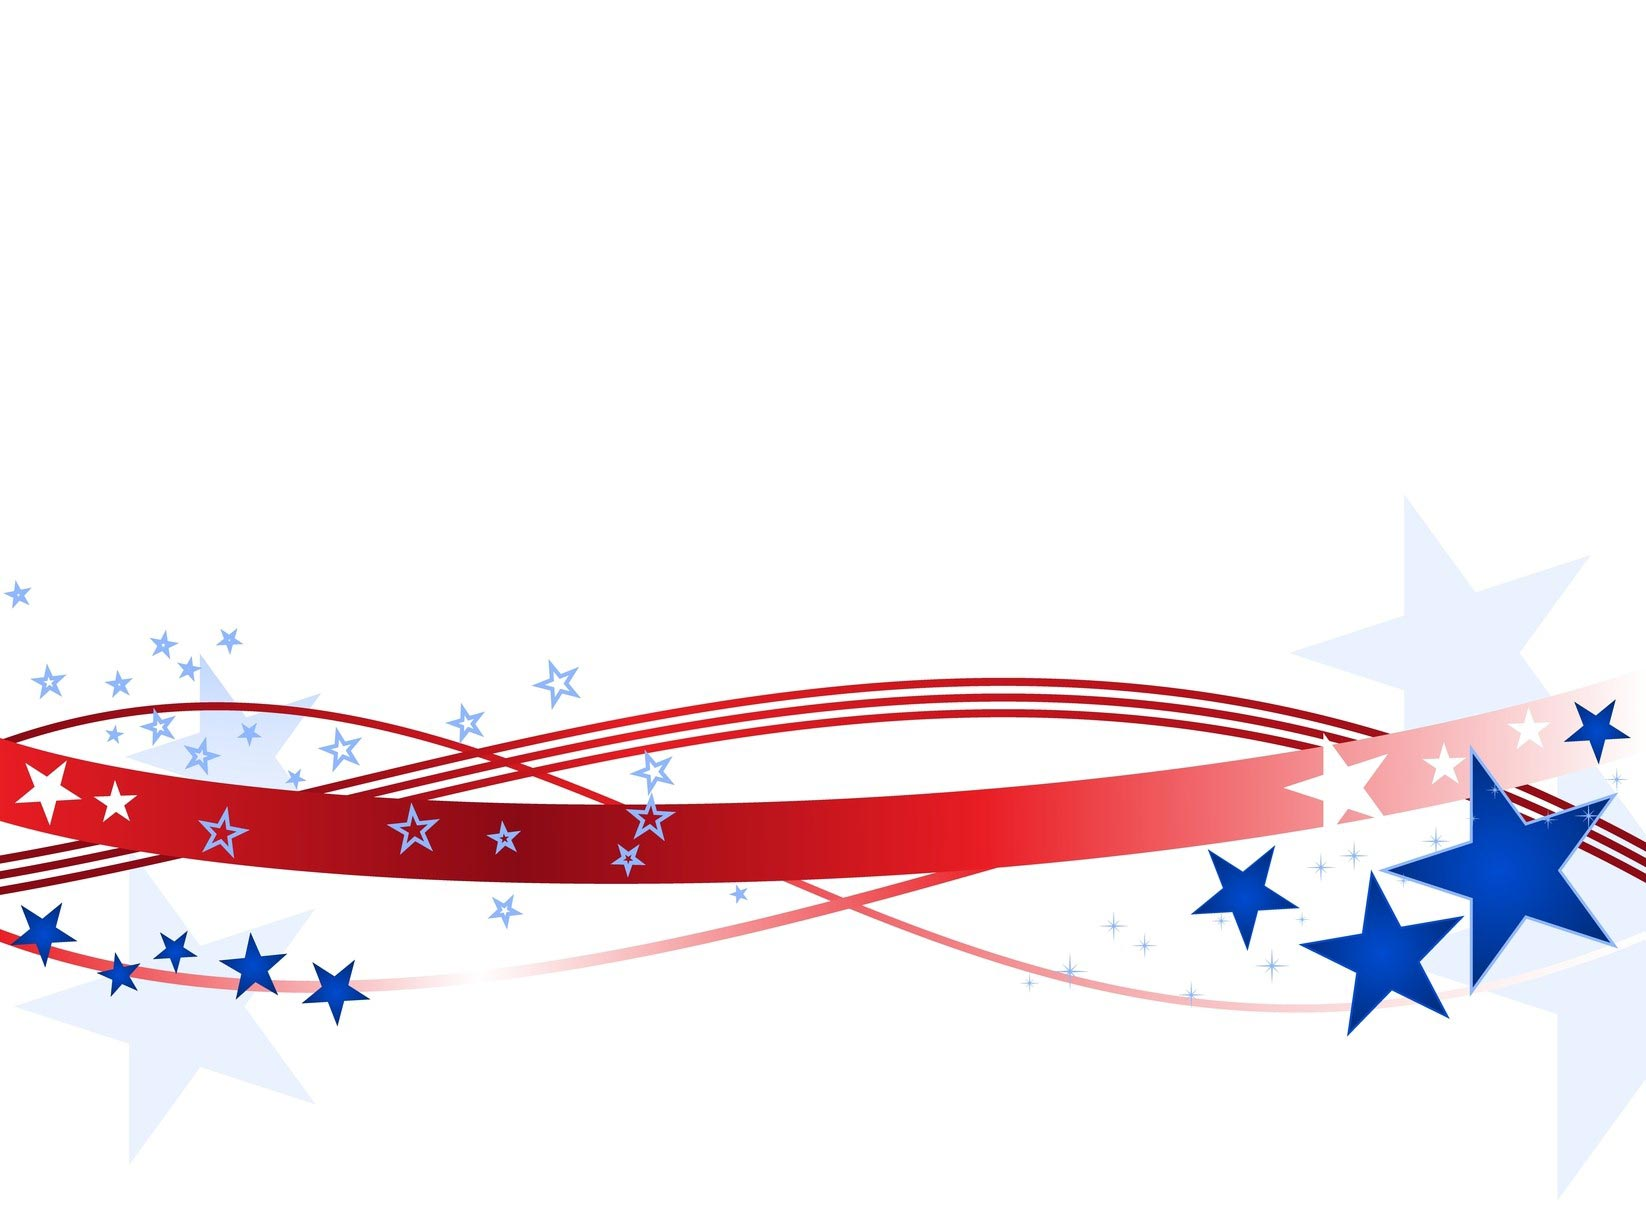 4th of july fireworks border clipart panda free clipart images rh clipartpanda com free firework clipart animation free clipart fireworks celebration